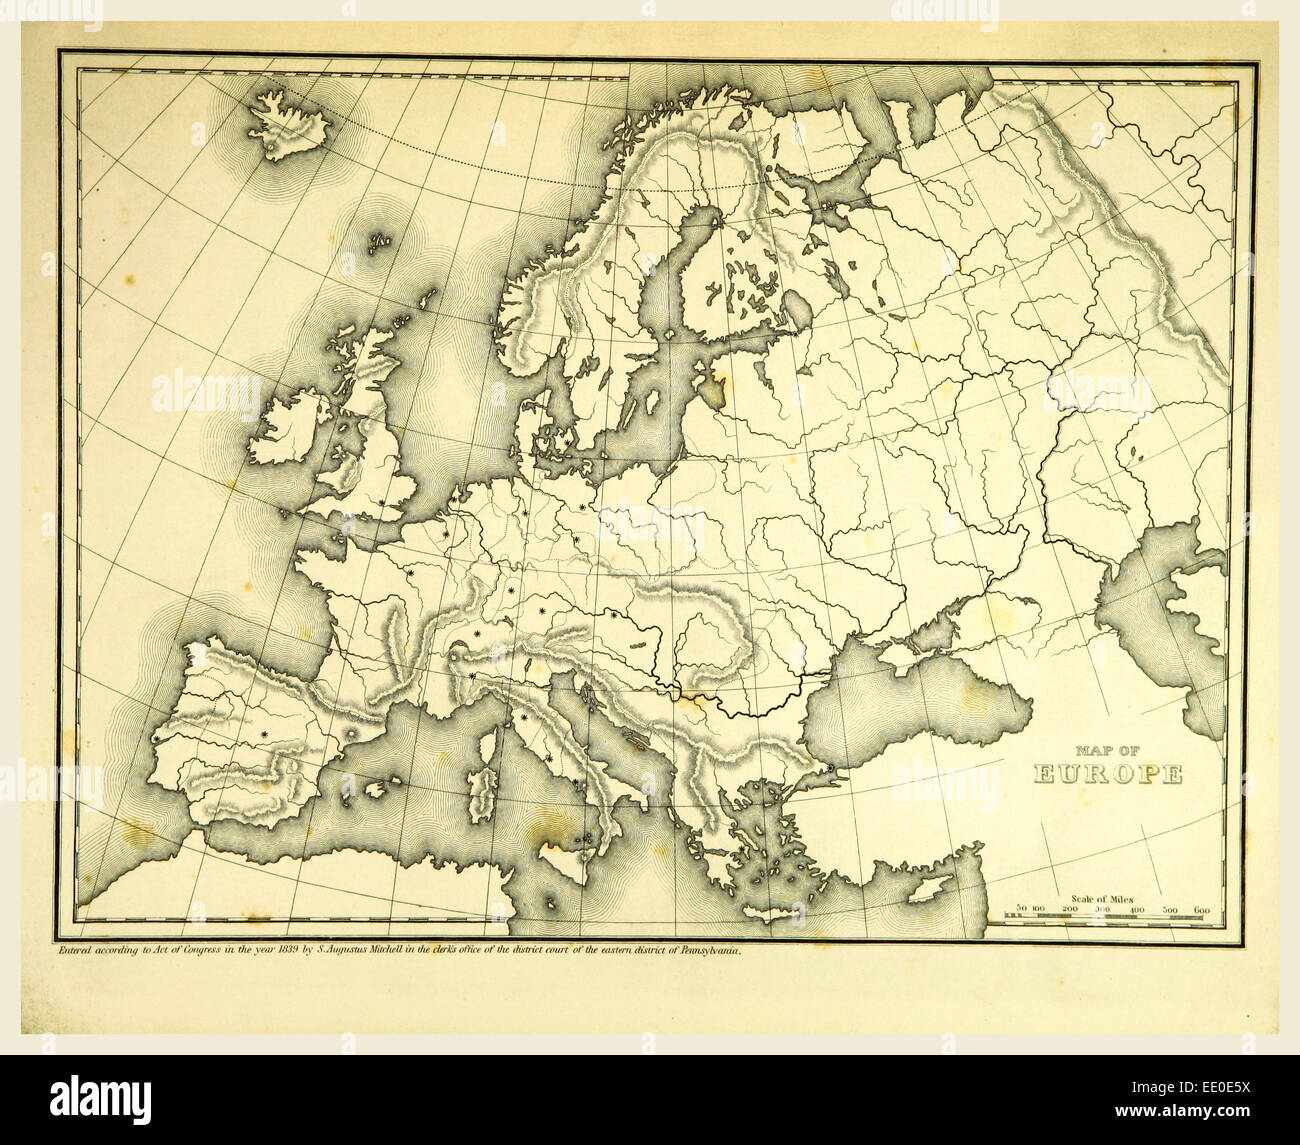 Mitchell's Atlas of outline maps, Europe, 19th century engraving - Stock Image